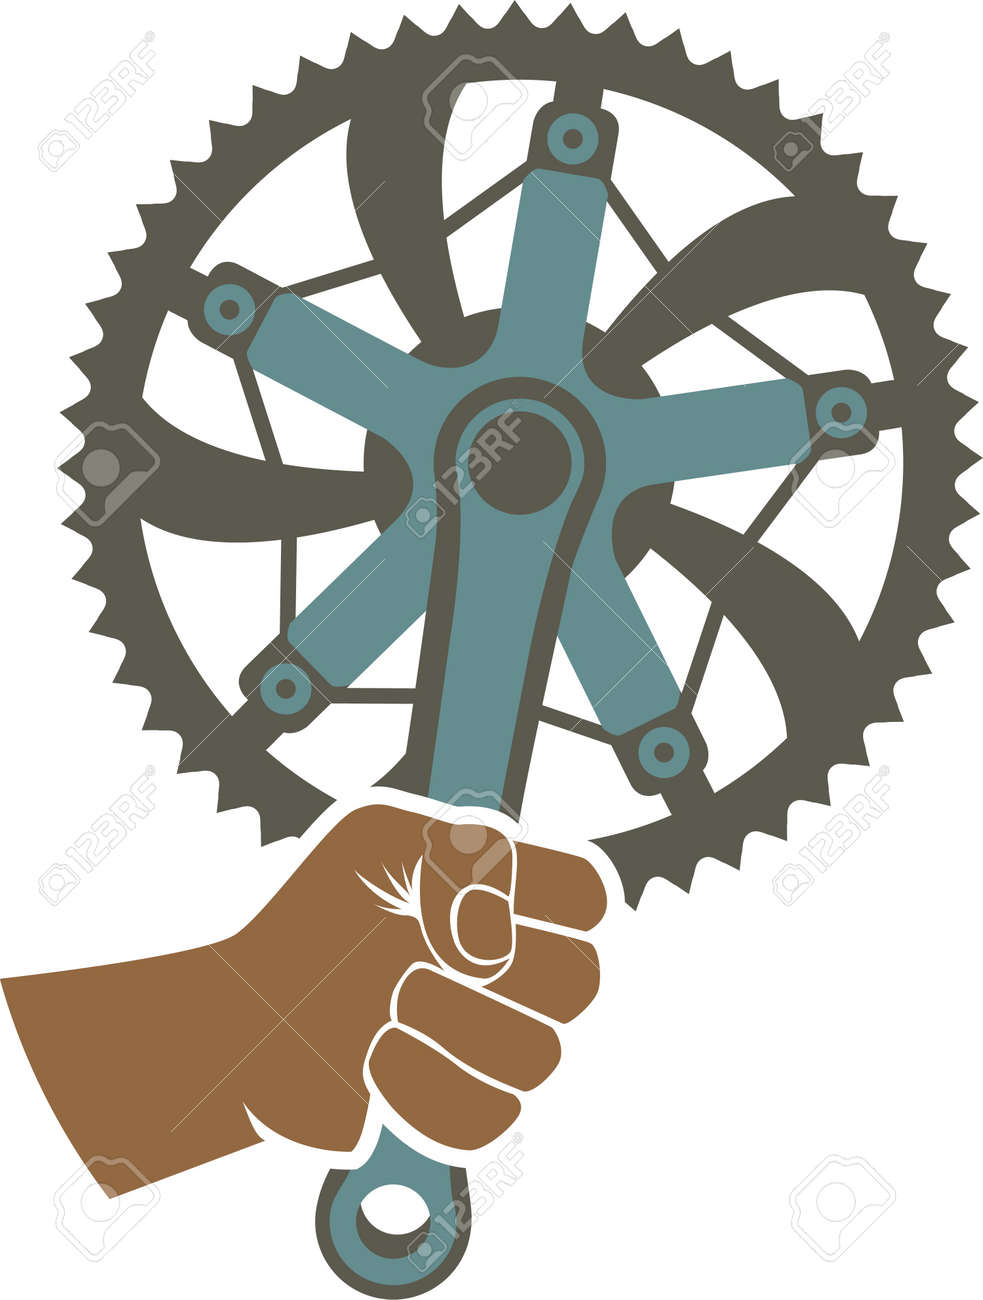 We got the power badge illustration with a bike chainring and fist - 22188375